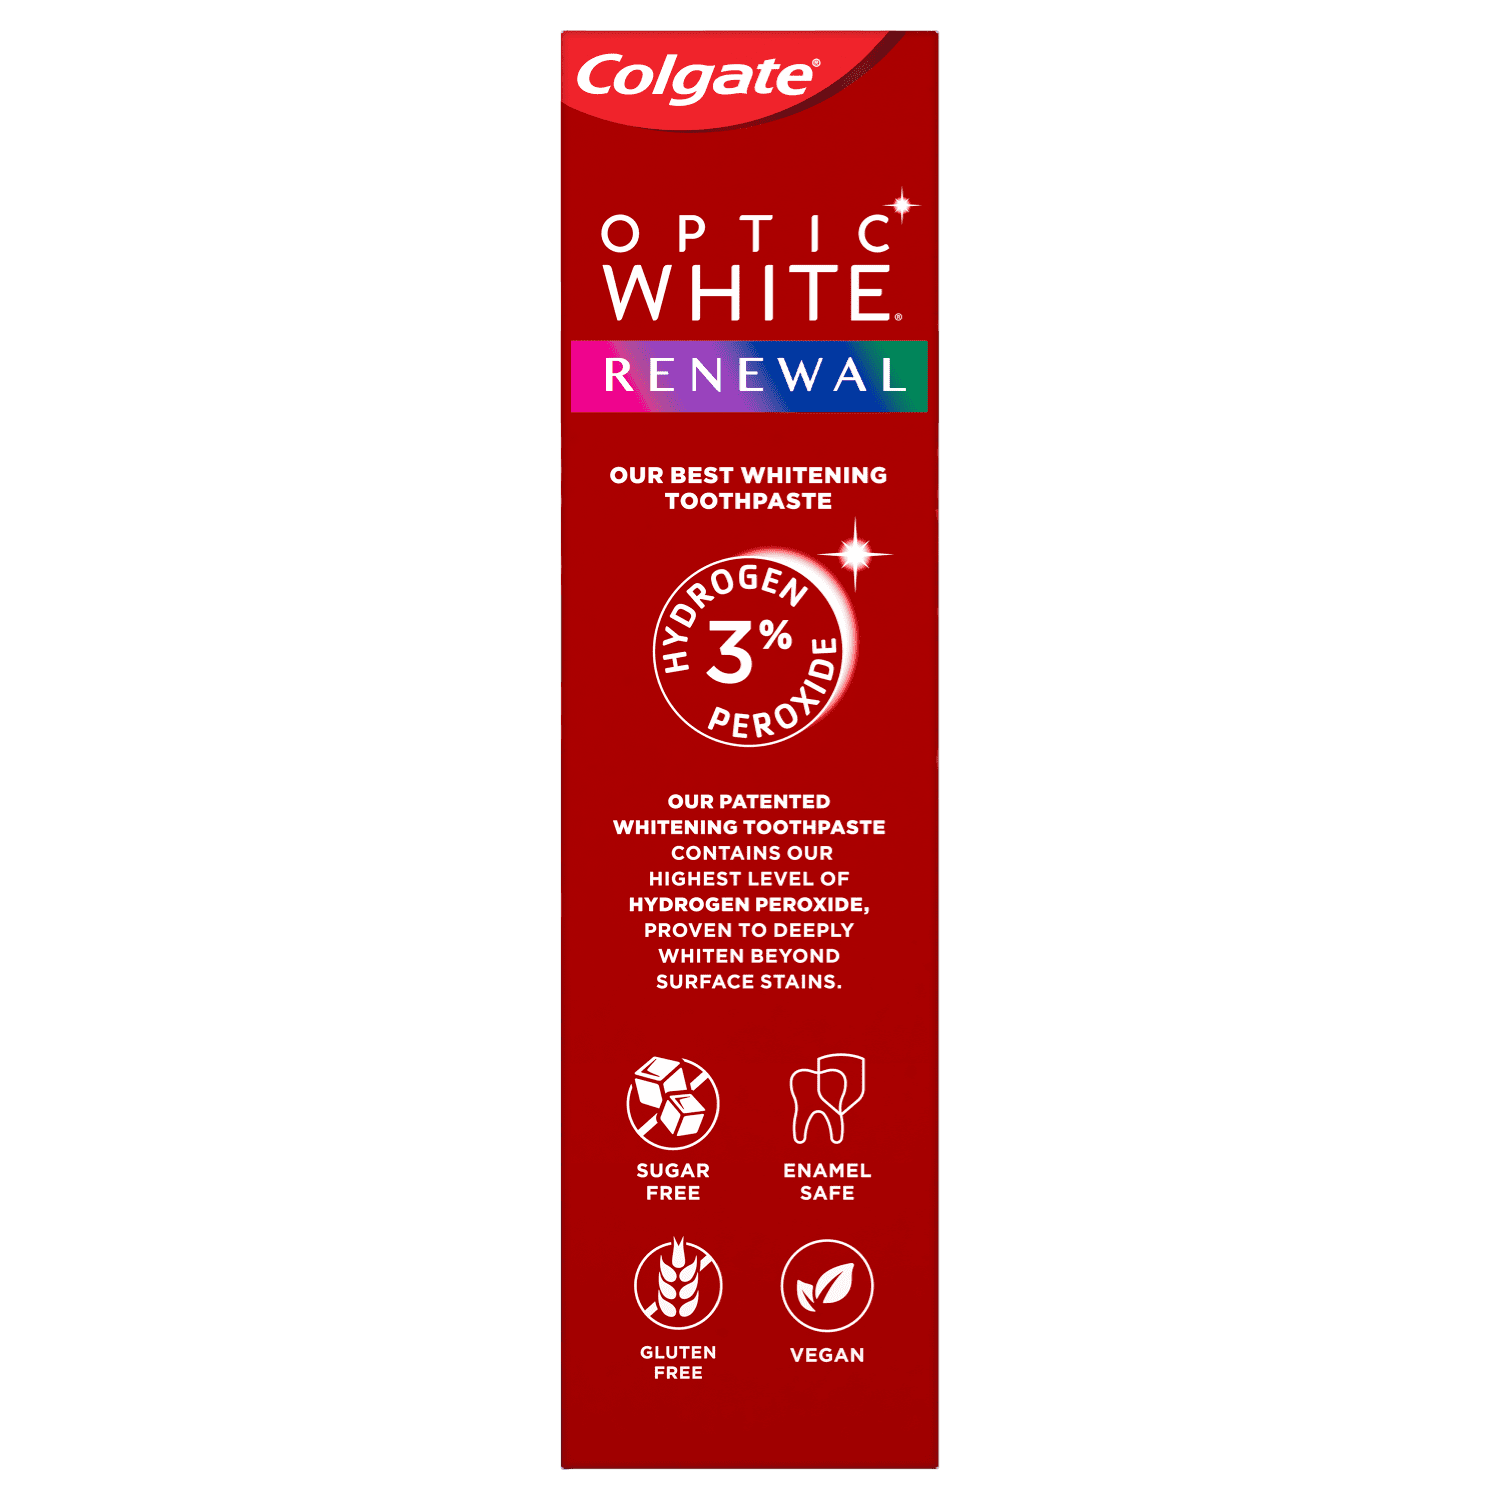 Colgate Optic White Renewal Teeth Whitening Toothpaste Enamel